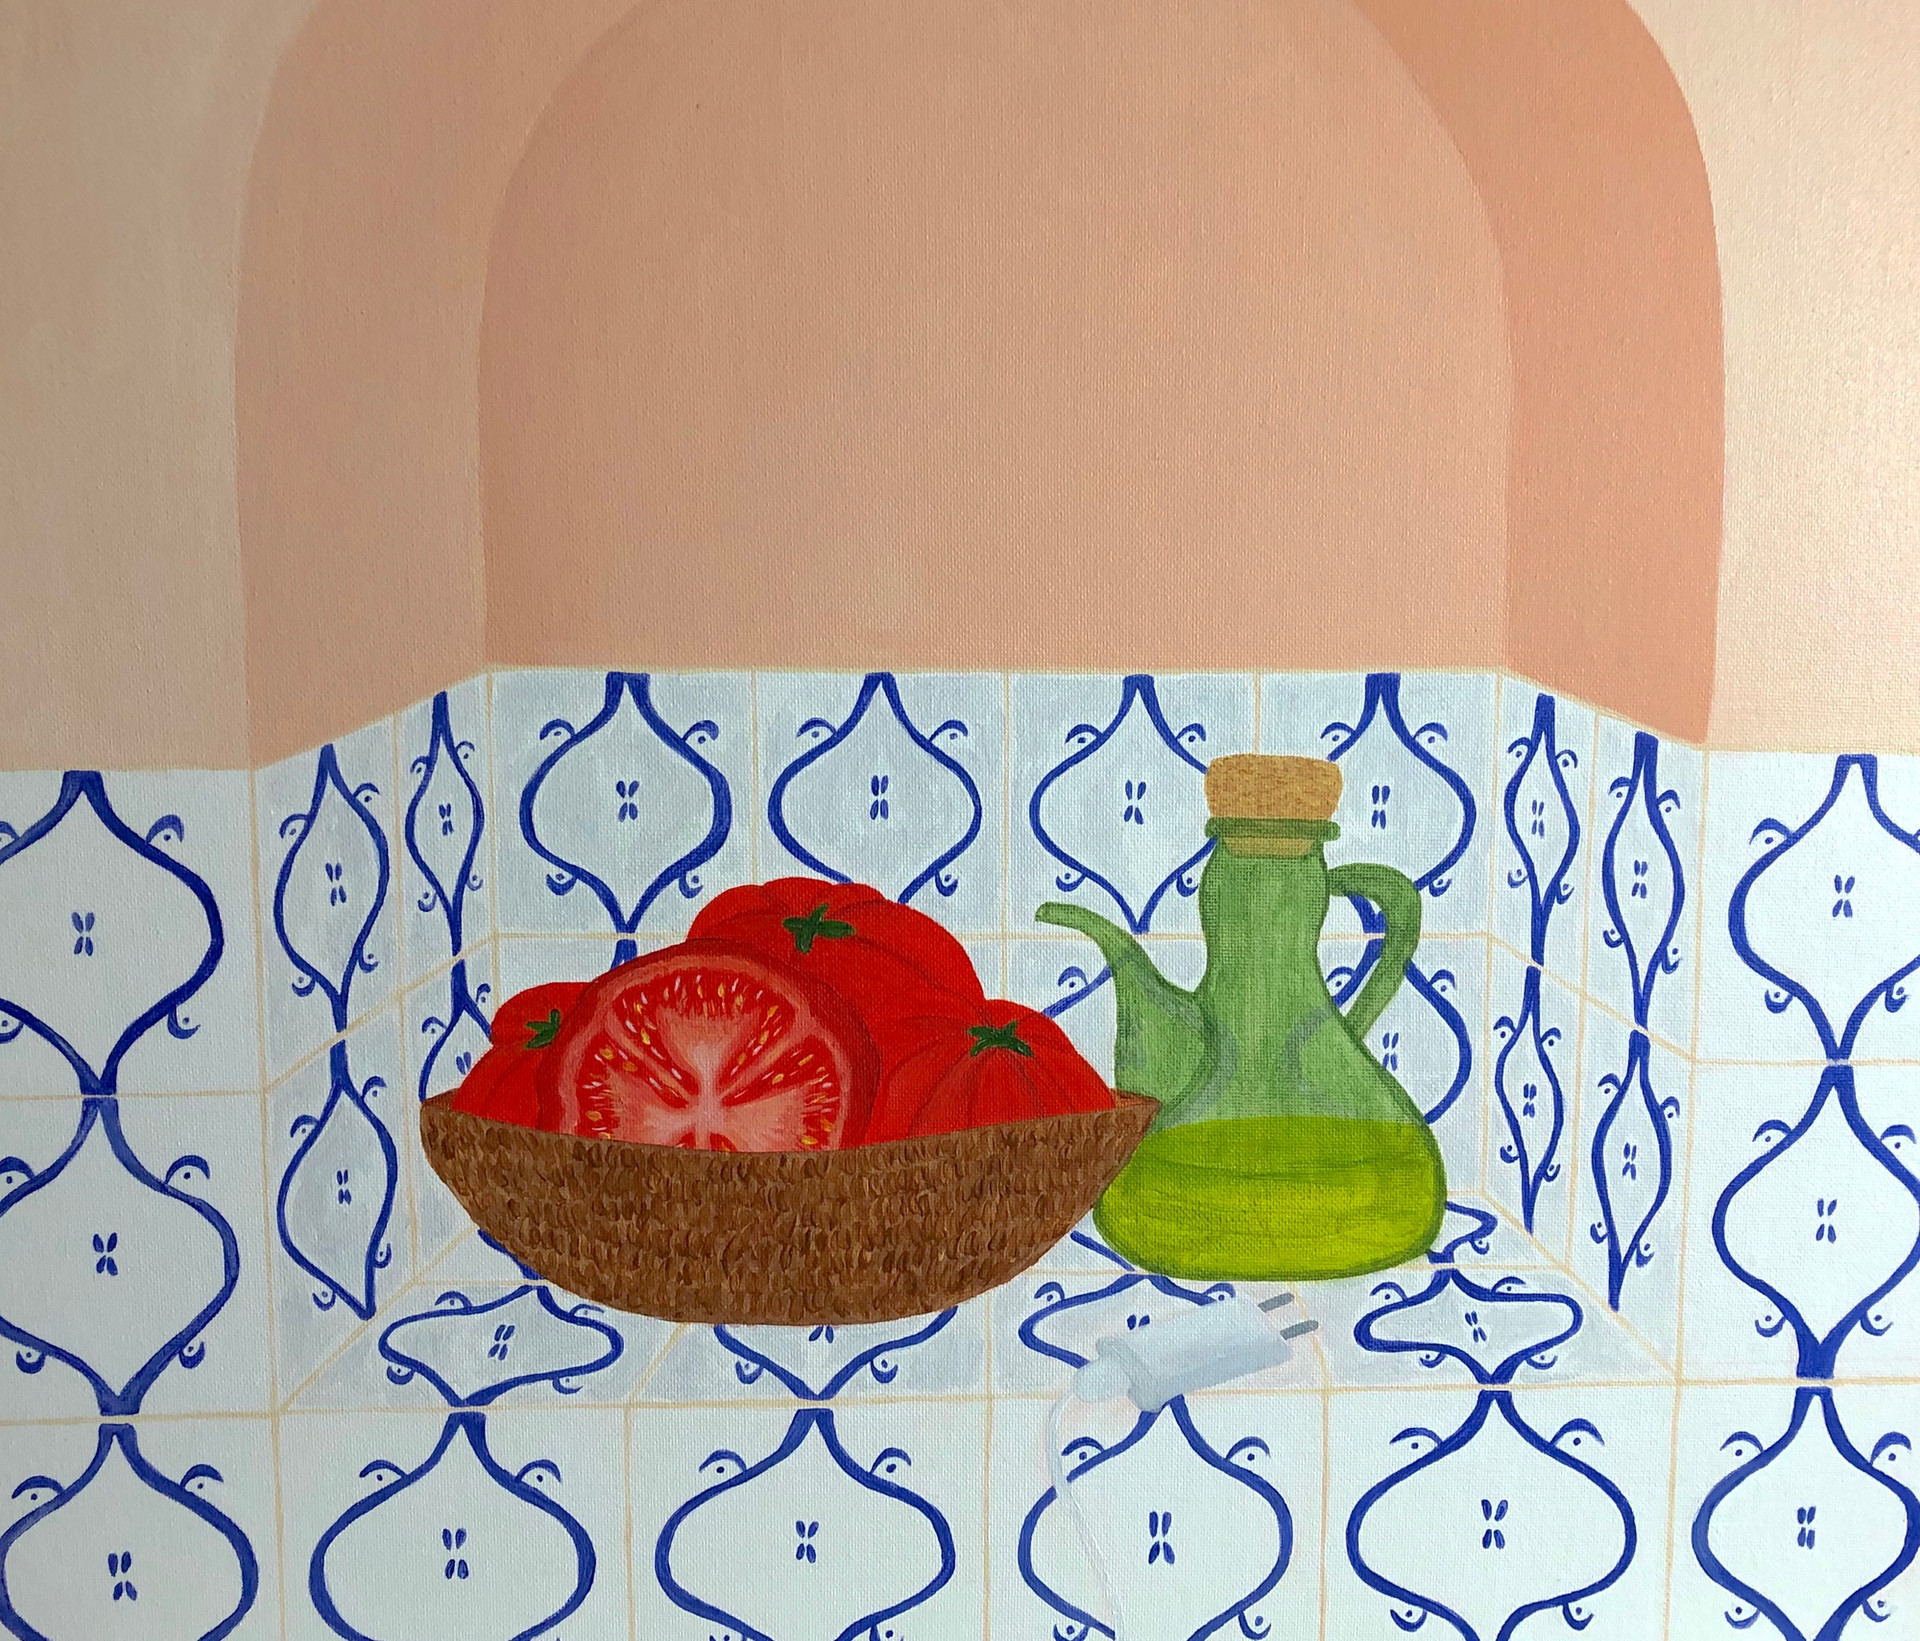 Tomatoes and tiles